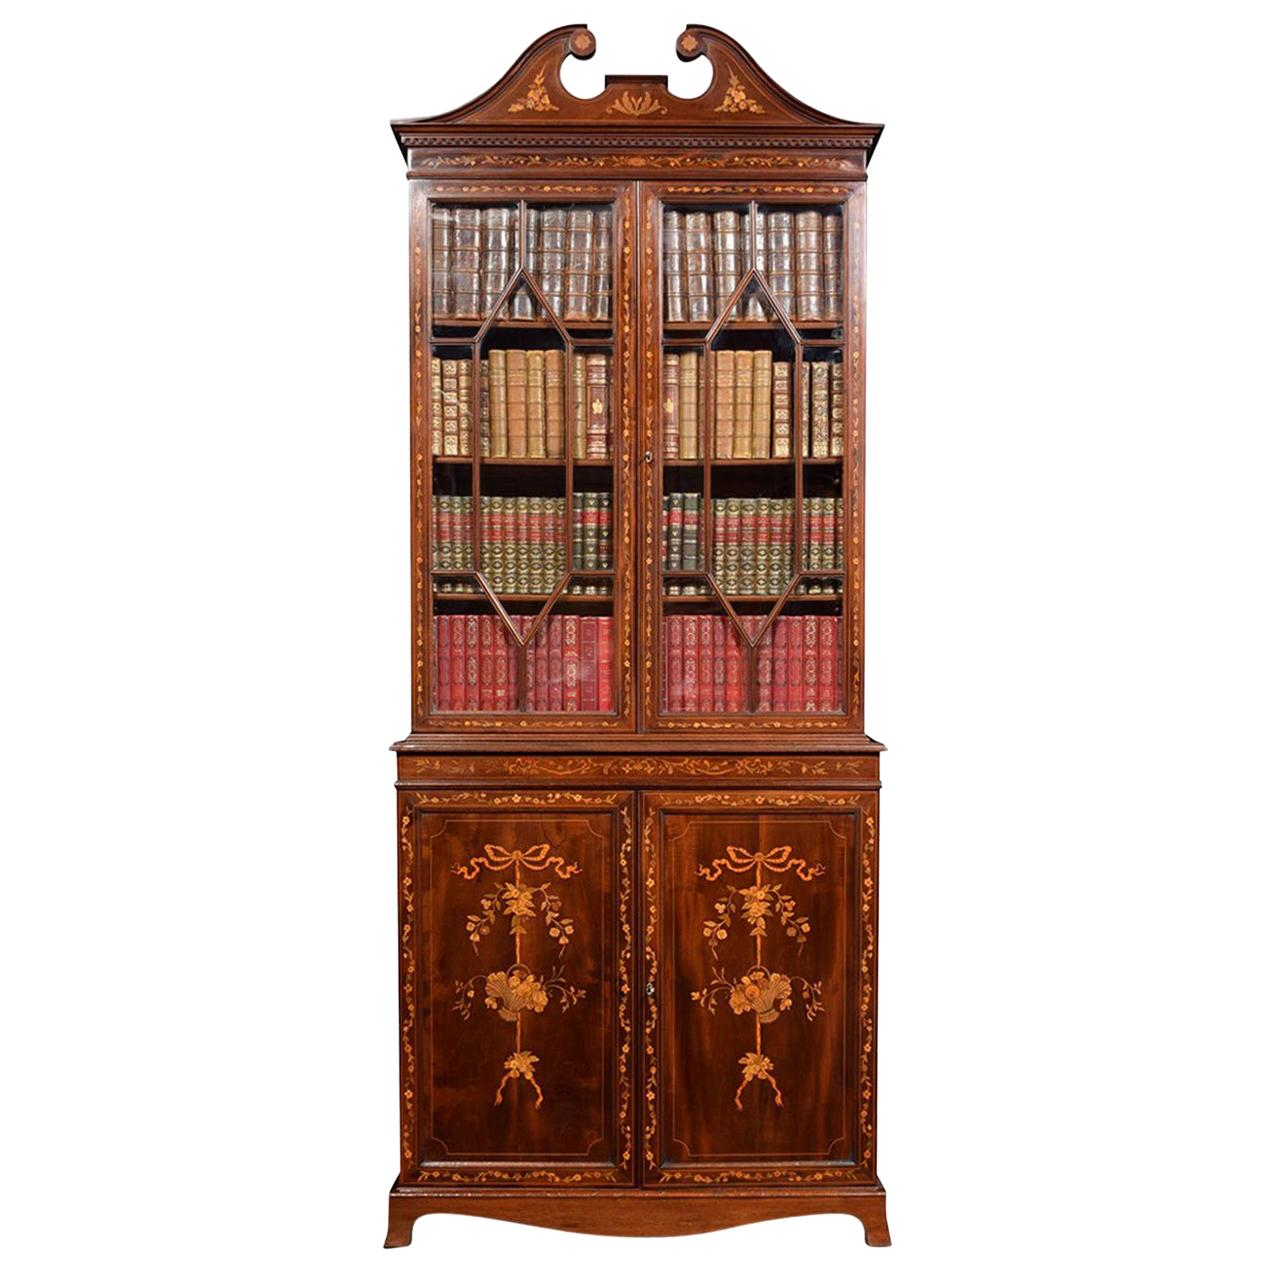 Mahogany Two-Door Inlaid Bookcase